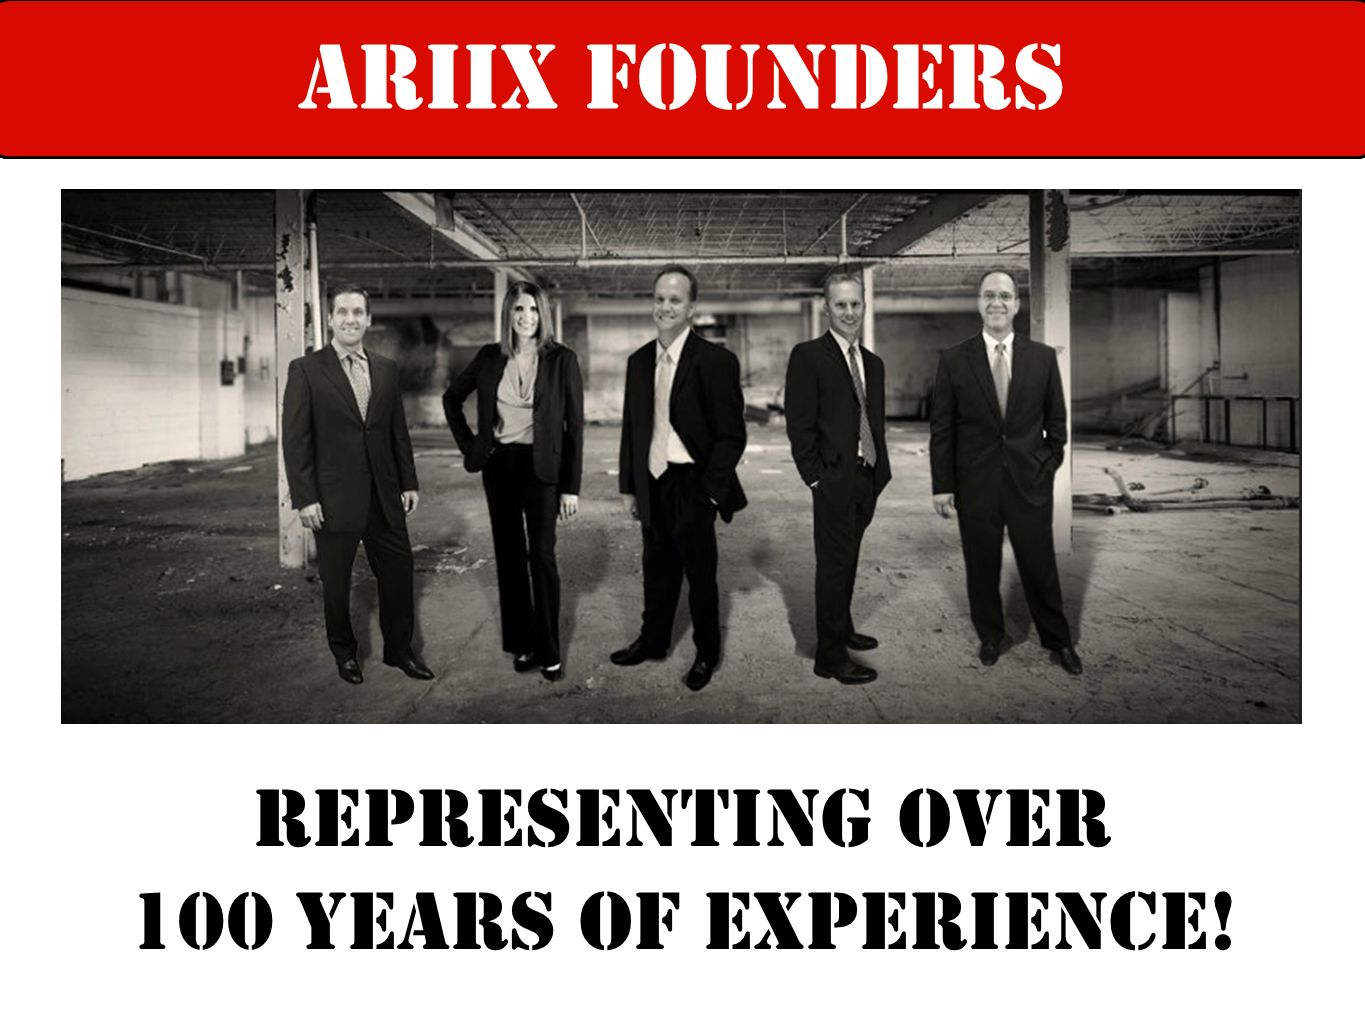 ARIIX Founders ariix leadership team Representing over